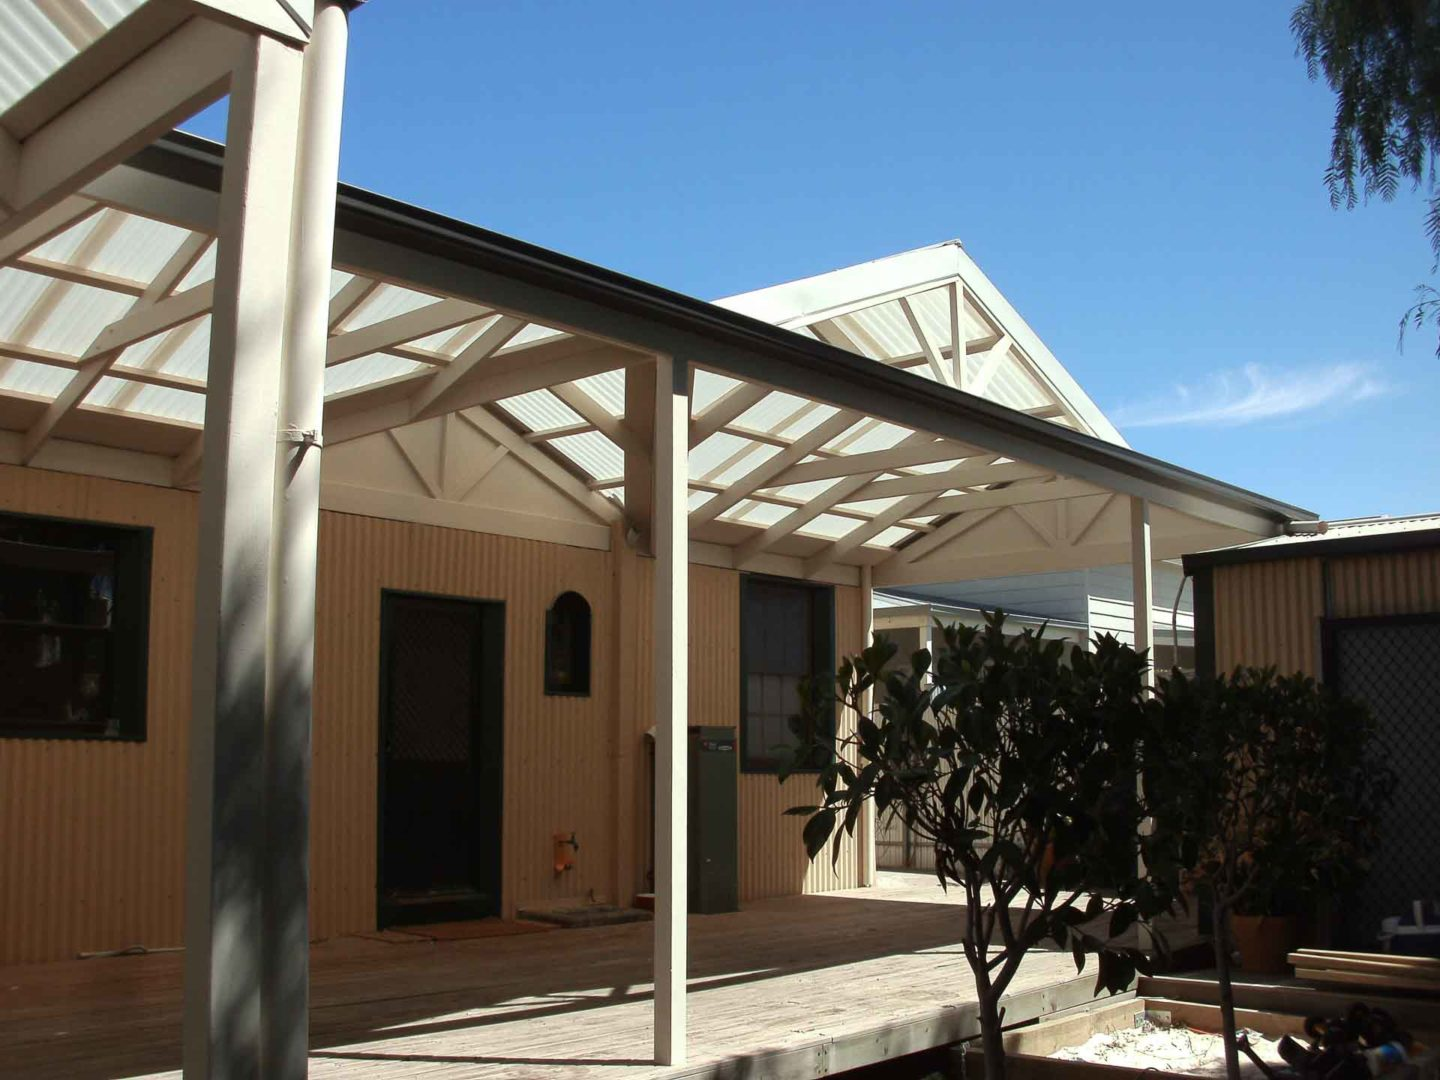 Get ready for summer with a pergola, verandah or patio from Australian Outdoor Living - The Gable range, Australian Outdoor Living.